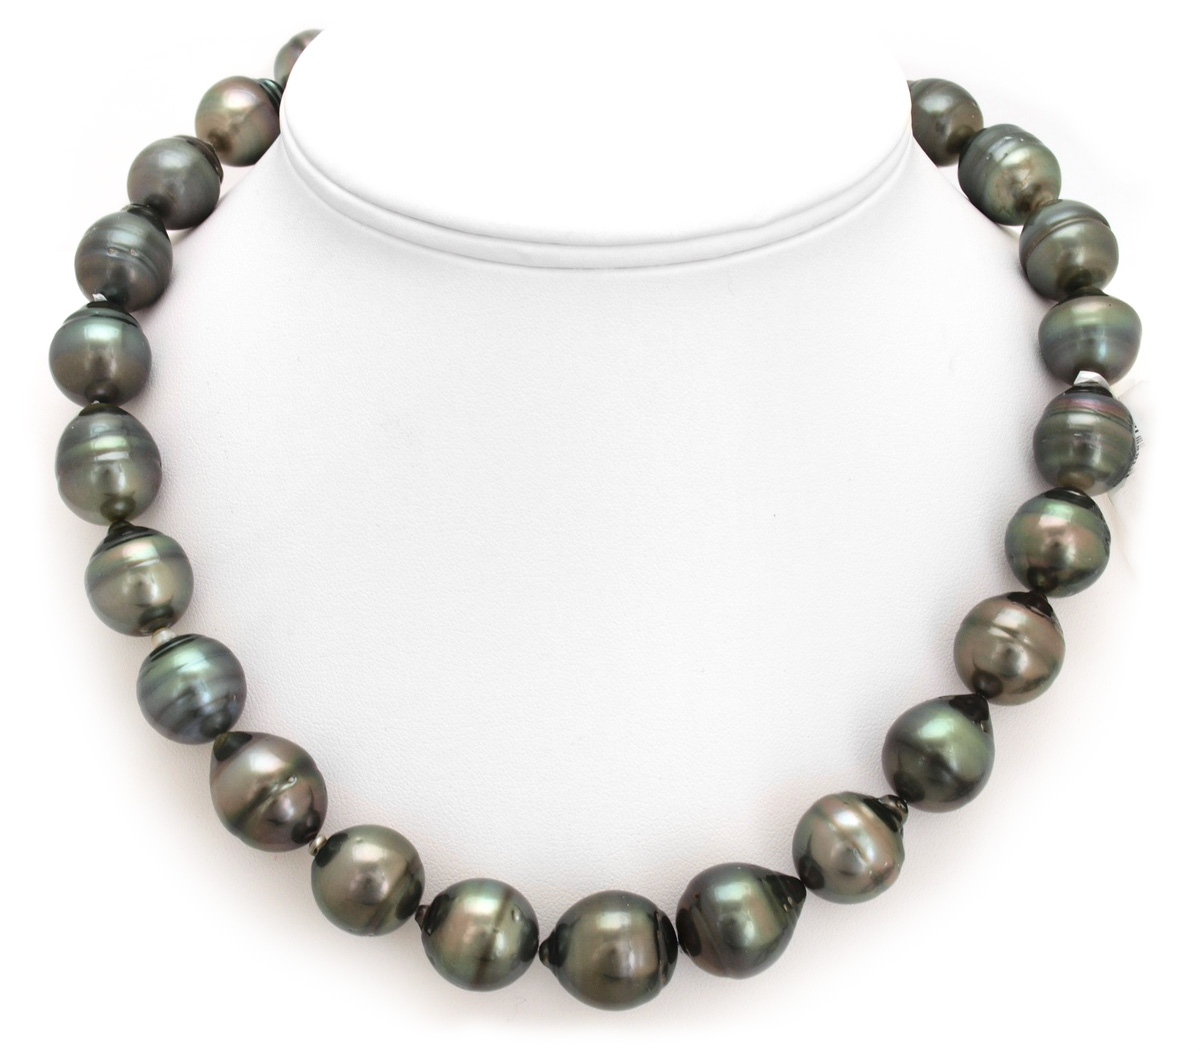 Huge Tahitian Pearl Necklace with Enormous Tahitian Pearls ...